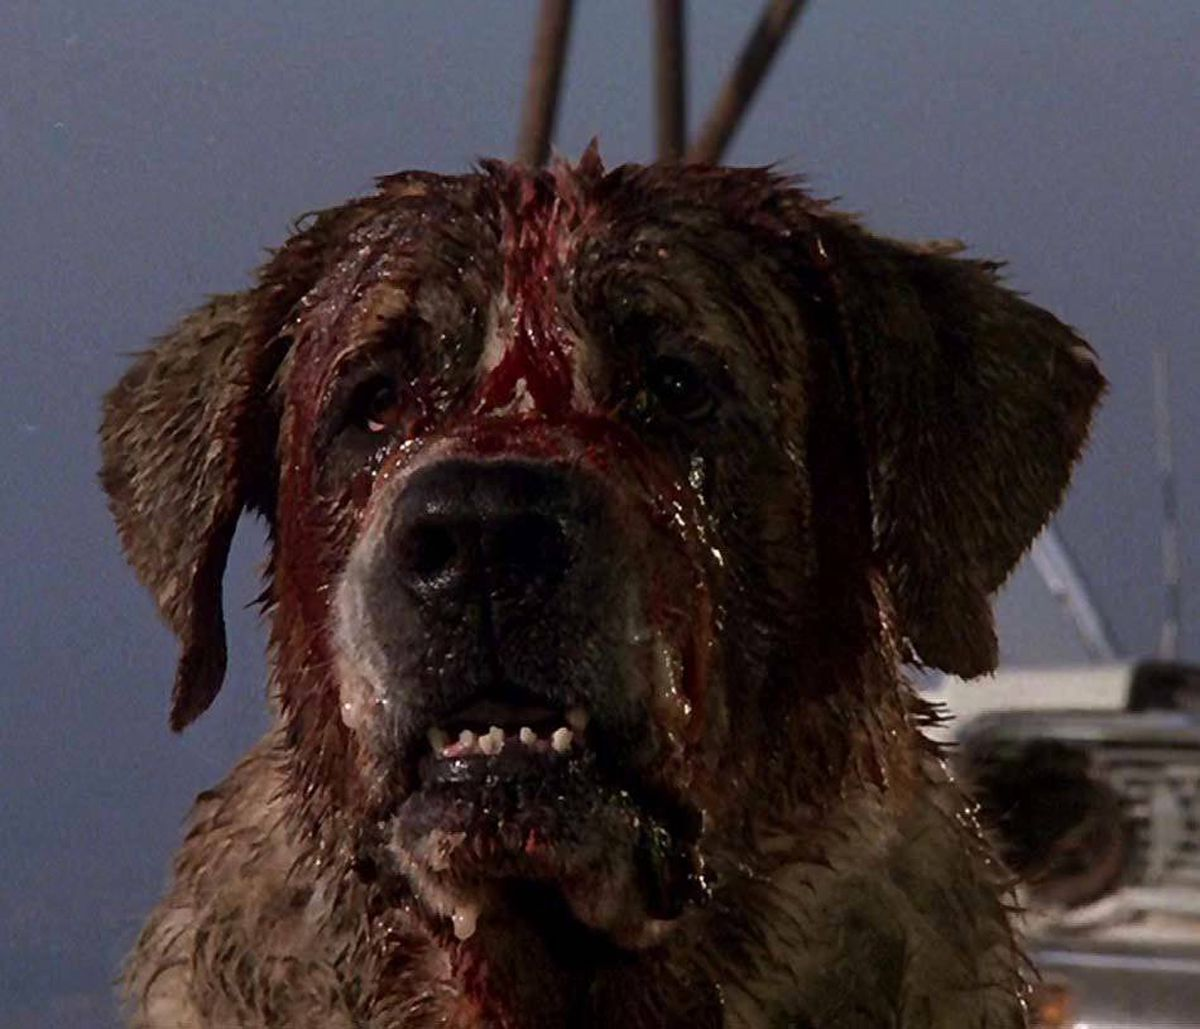 "MOVIE Cujo AMC, 10 p.m. ET; 7 p.m. PT Described by Stephen King as a ""big, dumb slugger of a movie,"" this thriller scared the wits out of moviegoers back in 1983. Taking considerable liberties from King's original novel, the film stars Dee Wallace as Donna, a frustrated Maine housewife who brings her young son along when she takes her ailing car to a mechanic living on a nearby farm. Bad move, as it turns out, since the mechanic's Saint Bernard, named Cujo, has been infected by a rabid bat and has become a massive, slobbering killing machine. Note: The movie has a happier ending than the book, but it's still pretty unpleasant."